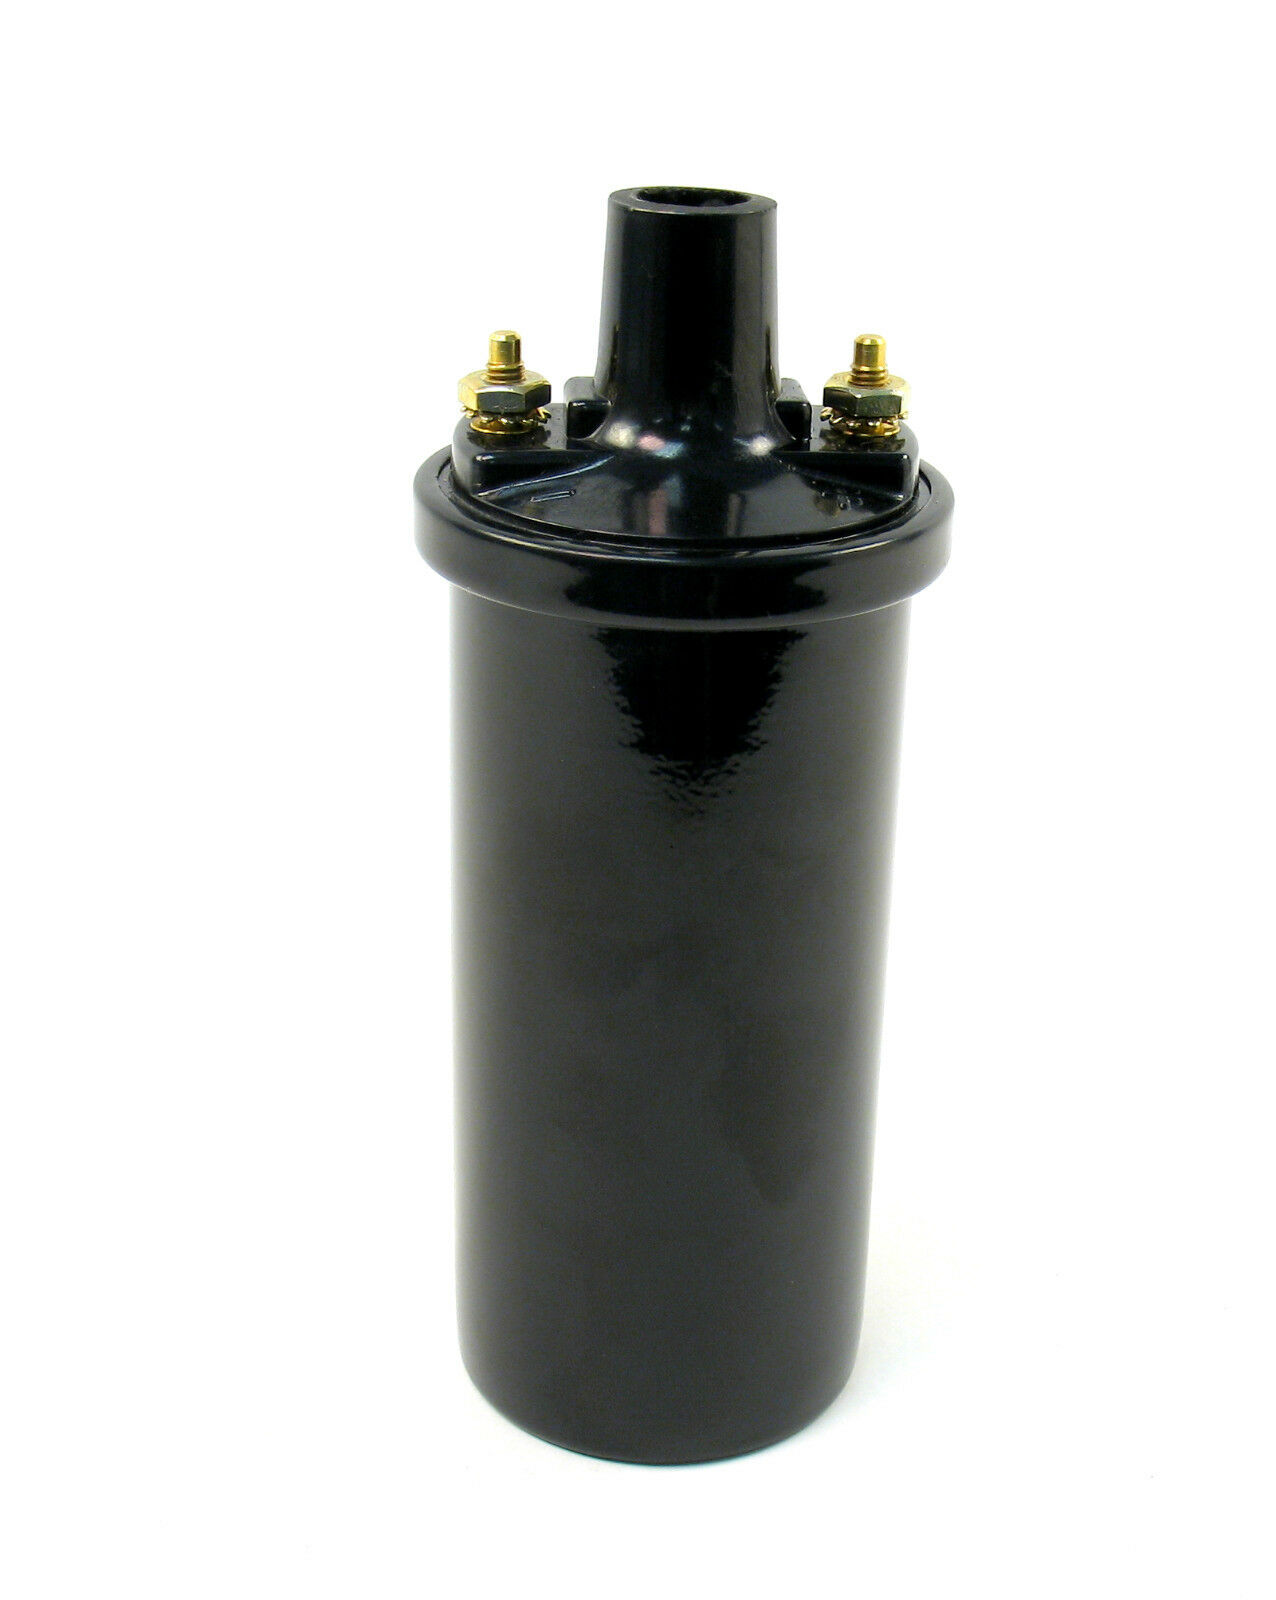 Details about Pertronix Ignitor+Coil for Allis Chalmers w/F163+Prestolite  IBT4701C Distributor